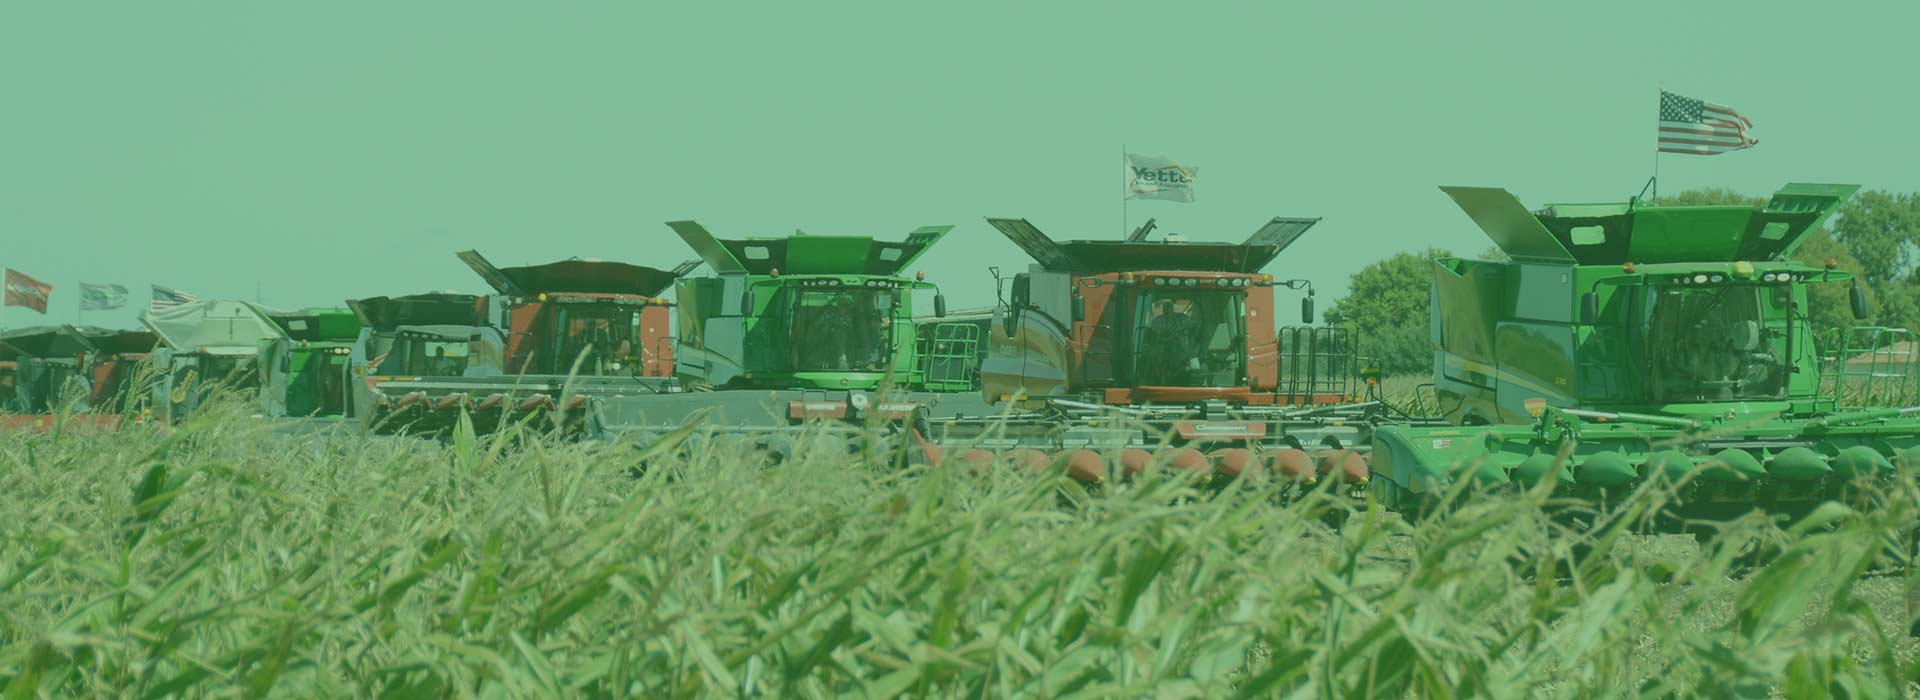 Field Demos at Farm Progress Show